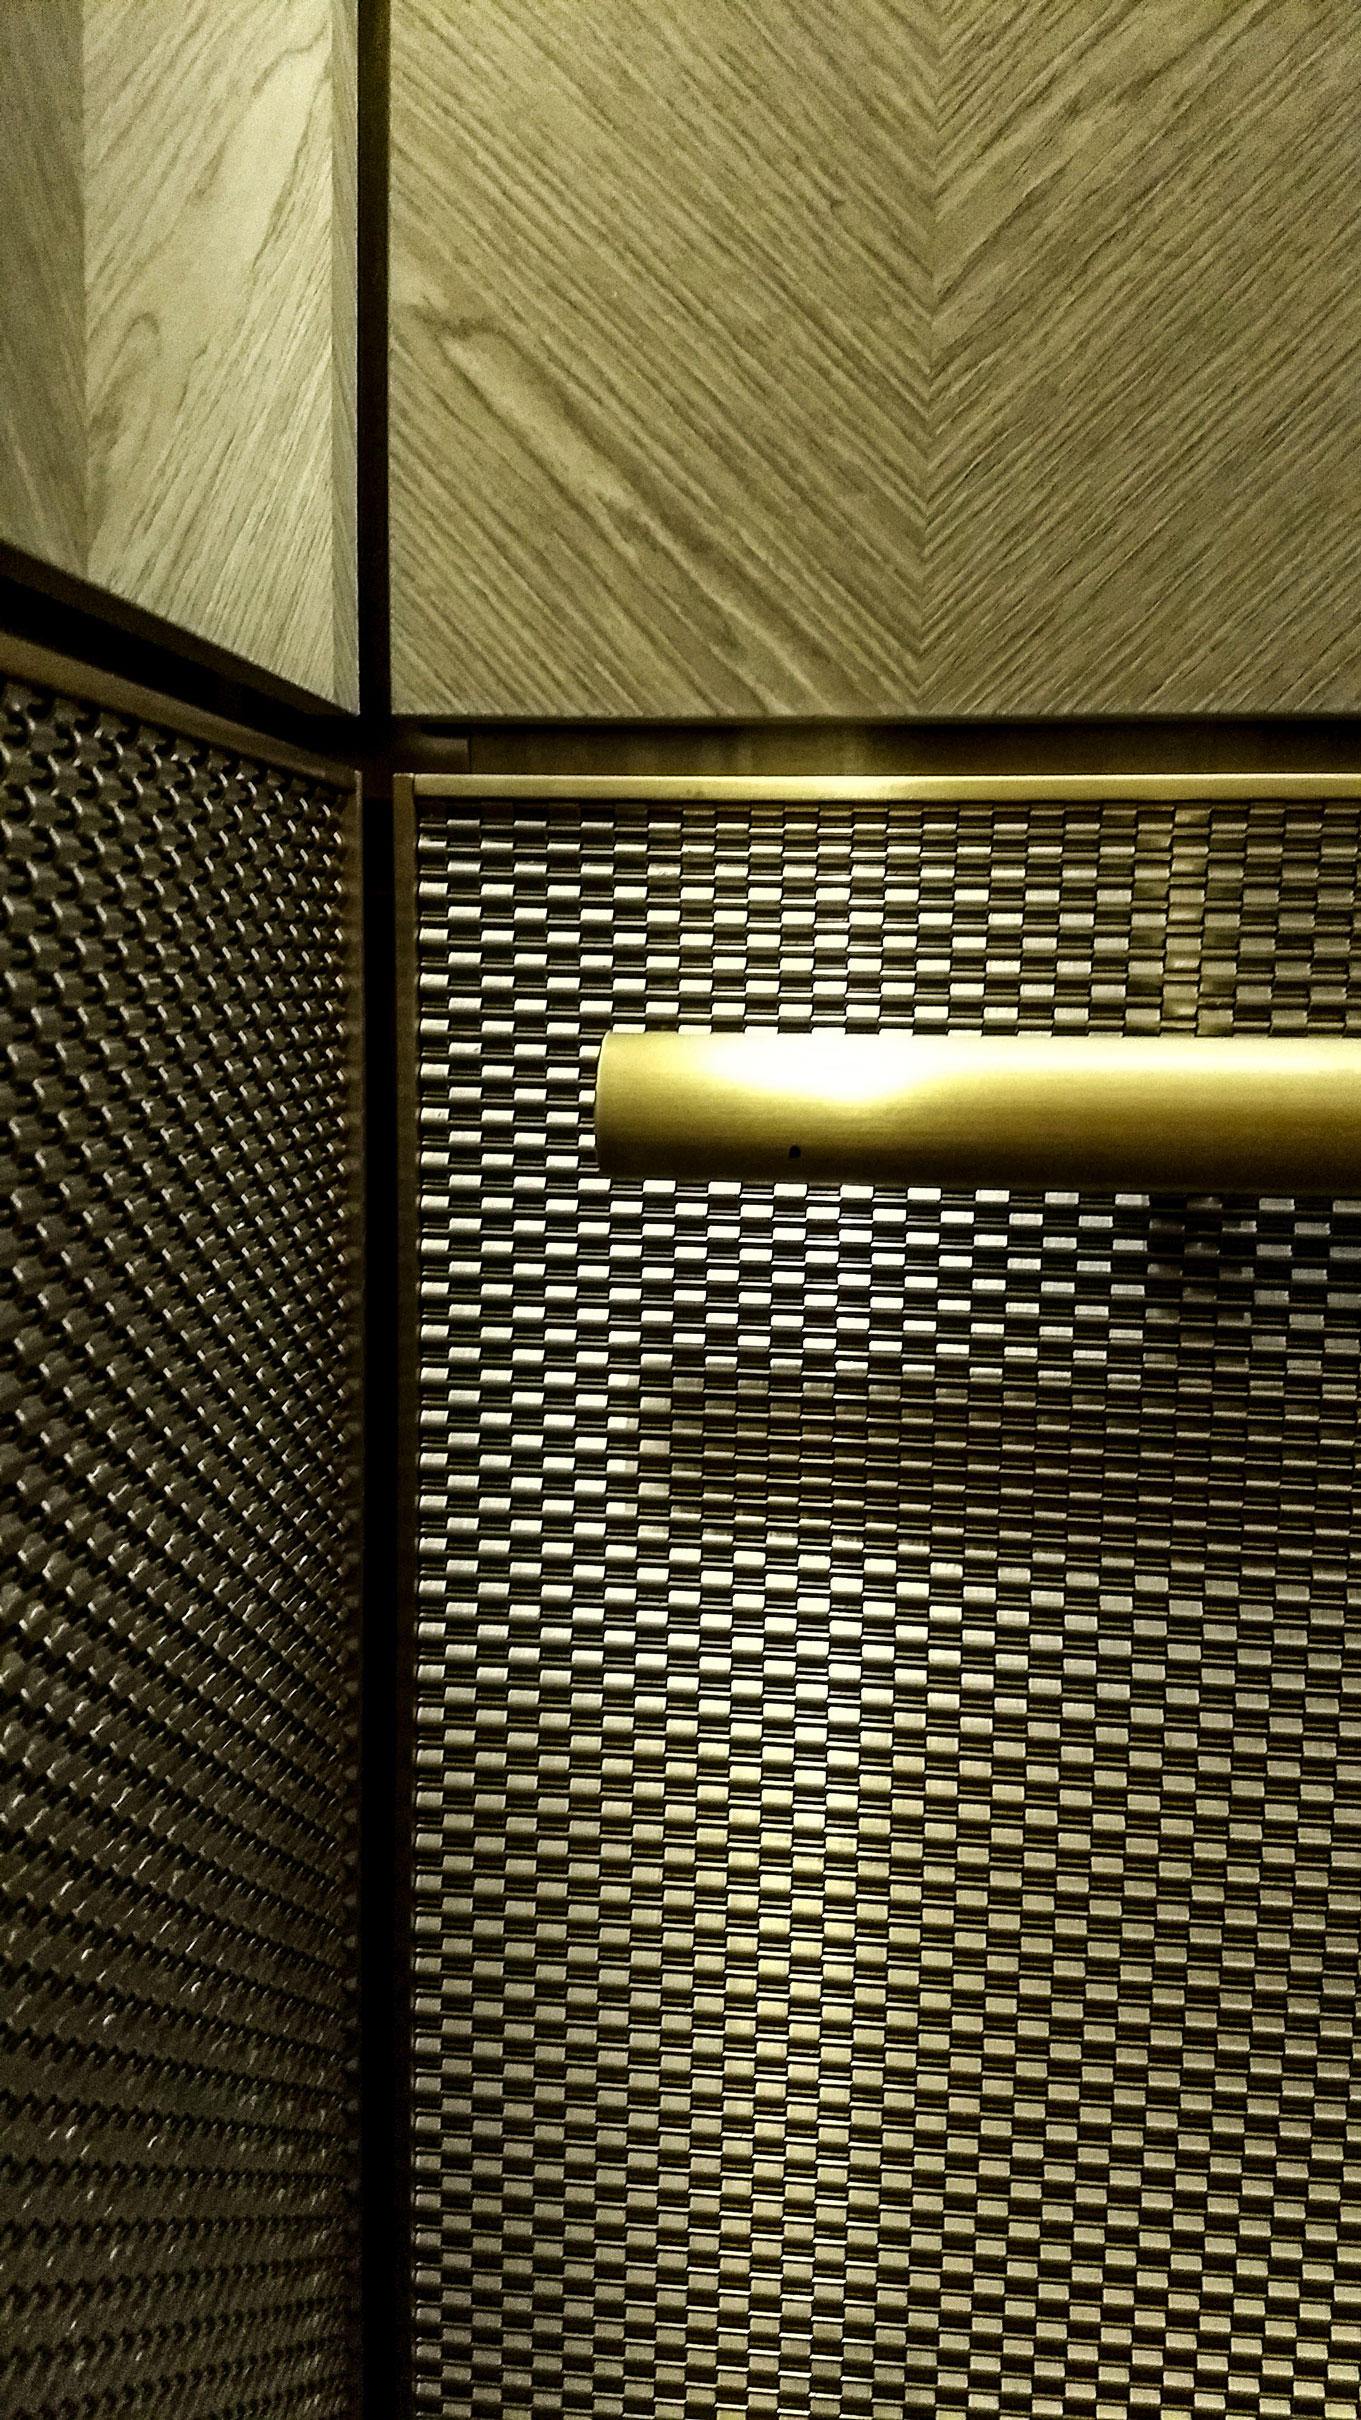 The stainless steel of the decorative mesh works perfectly with the warmth of the lighting and the other bronze elements of the cab interior.